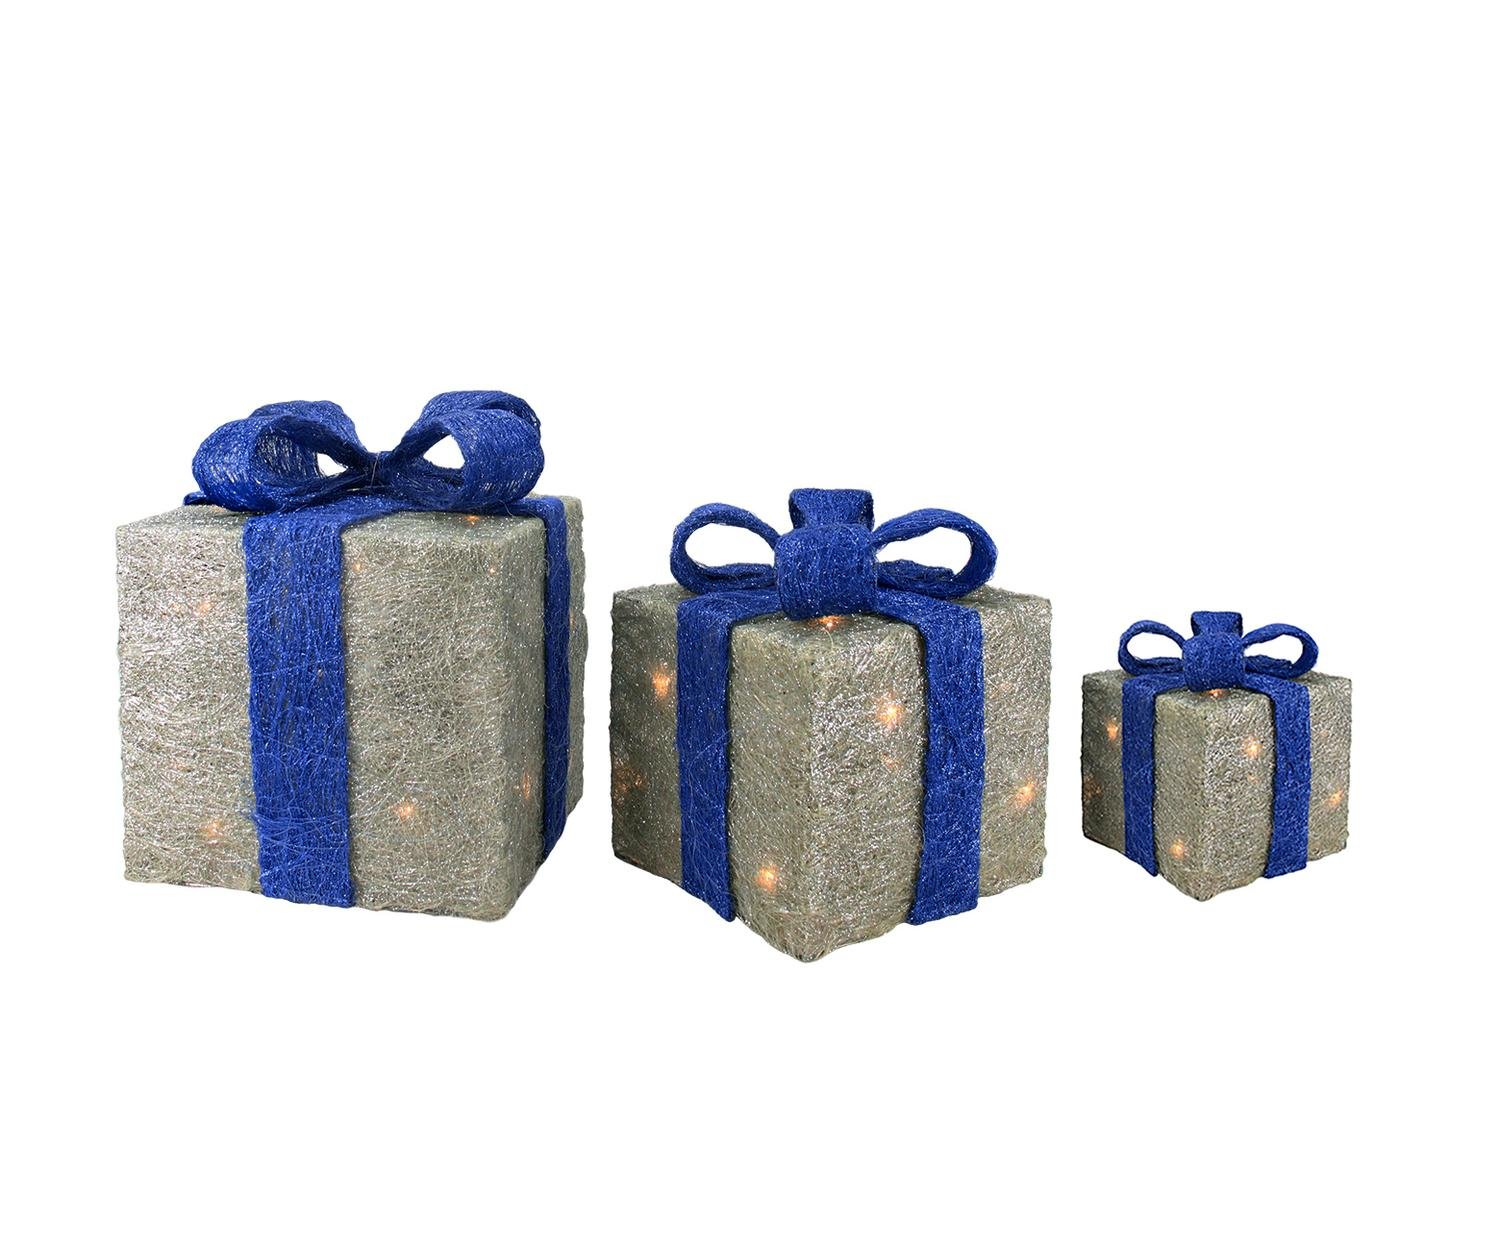 Lighted christmas gift boxes yard decor - Amazon Com Set Of 3 Lighted Silver With Blue Bows Sisal Gift Boxes Christmas Yard Art Decorations Garden Outdoor